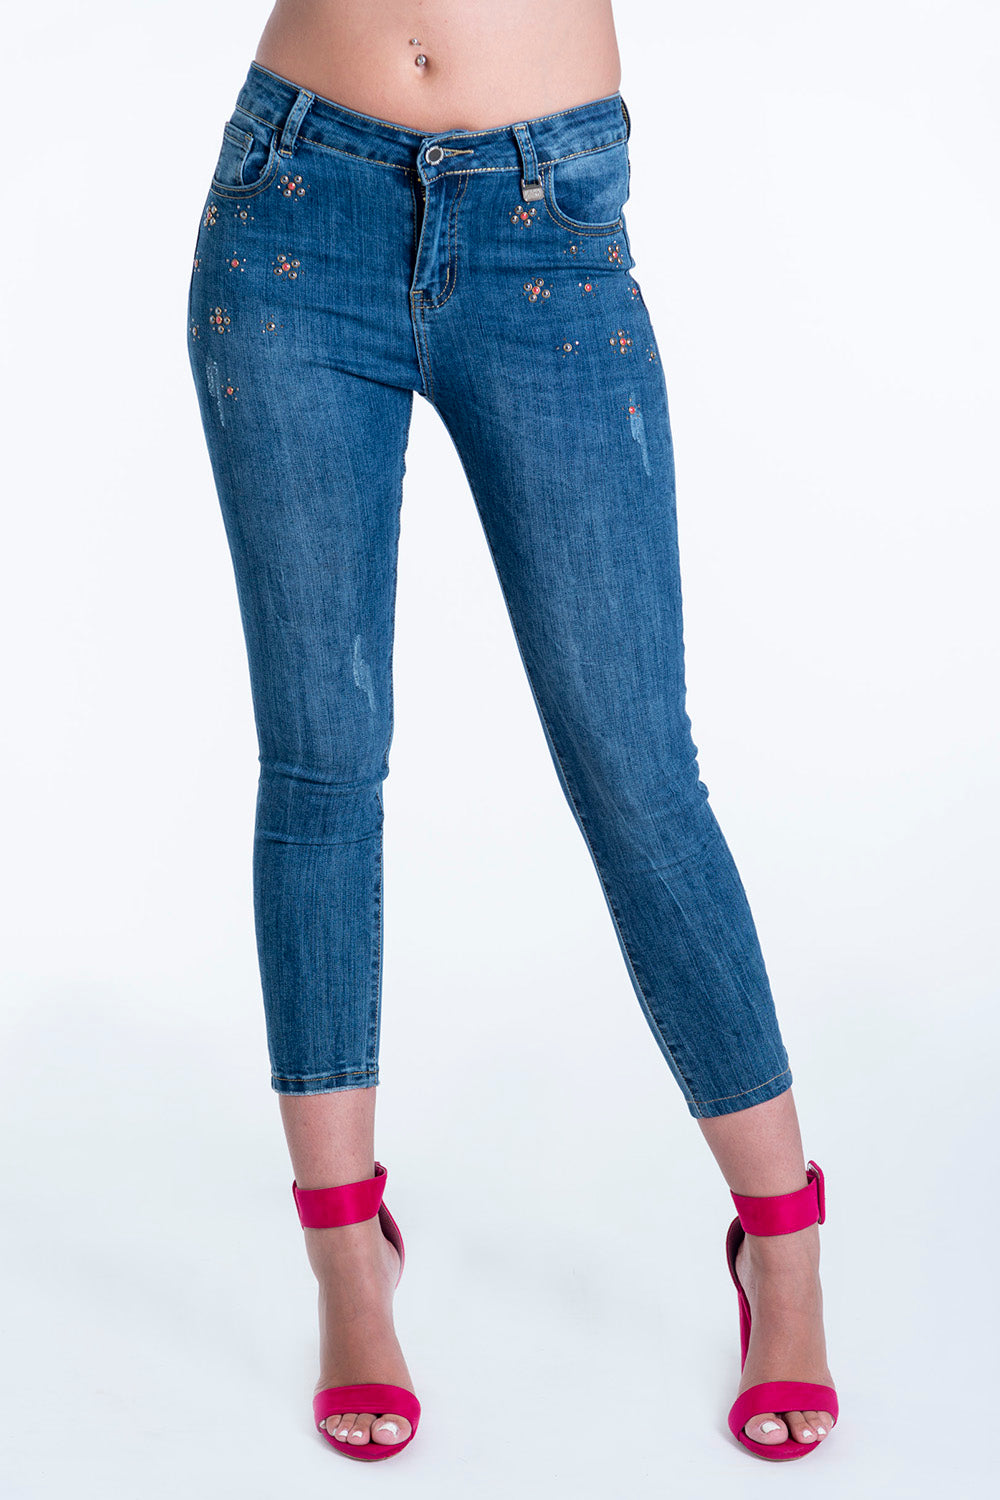 Akè skinny jeans with colorful studs